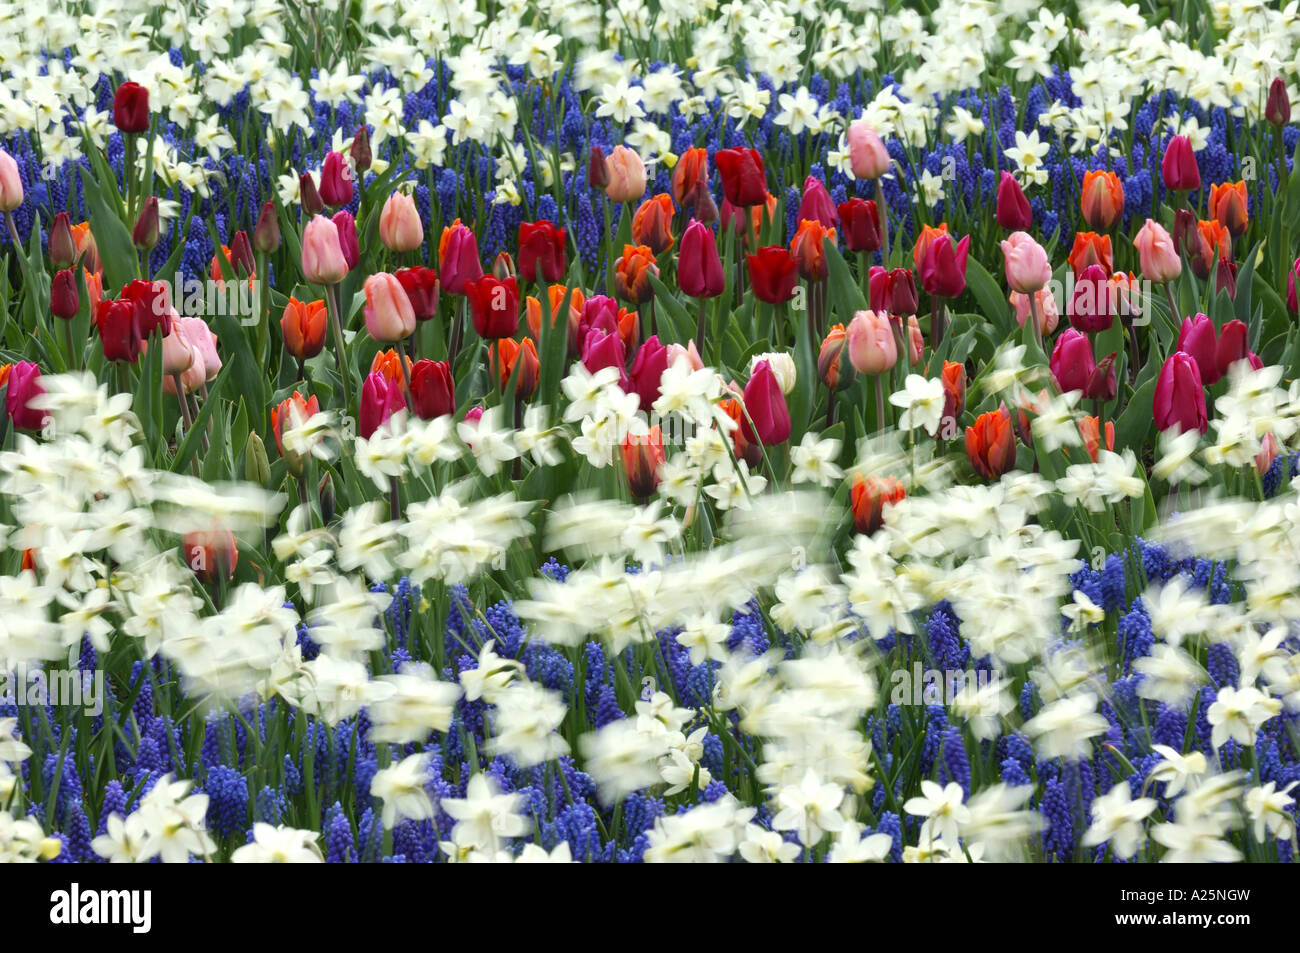 common garden tulip (Tulipa gesneriana), flowerbeds with garden tulips and daffodill, Narcissus pseudonarcissus Stock Photo